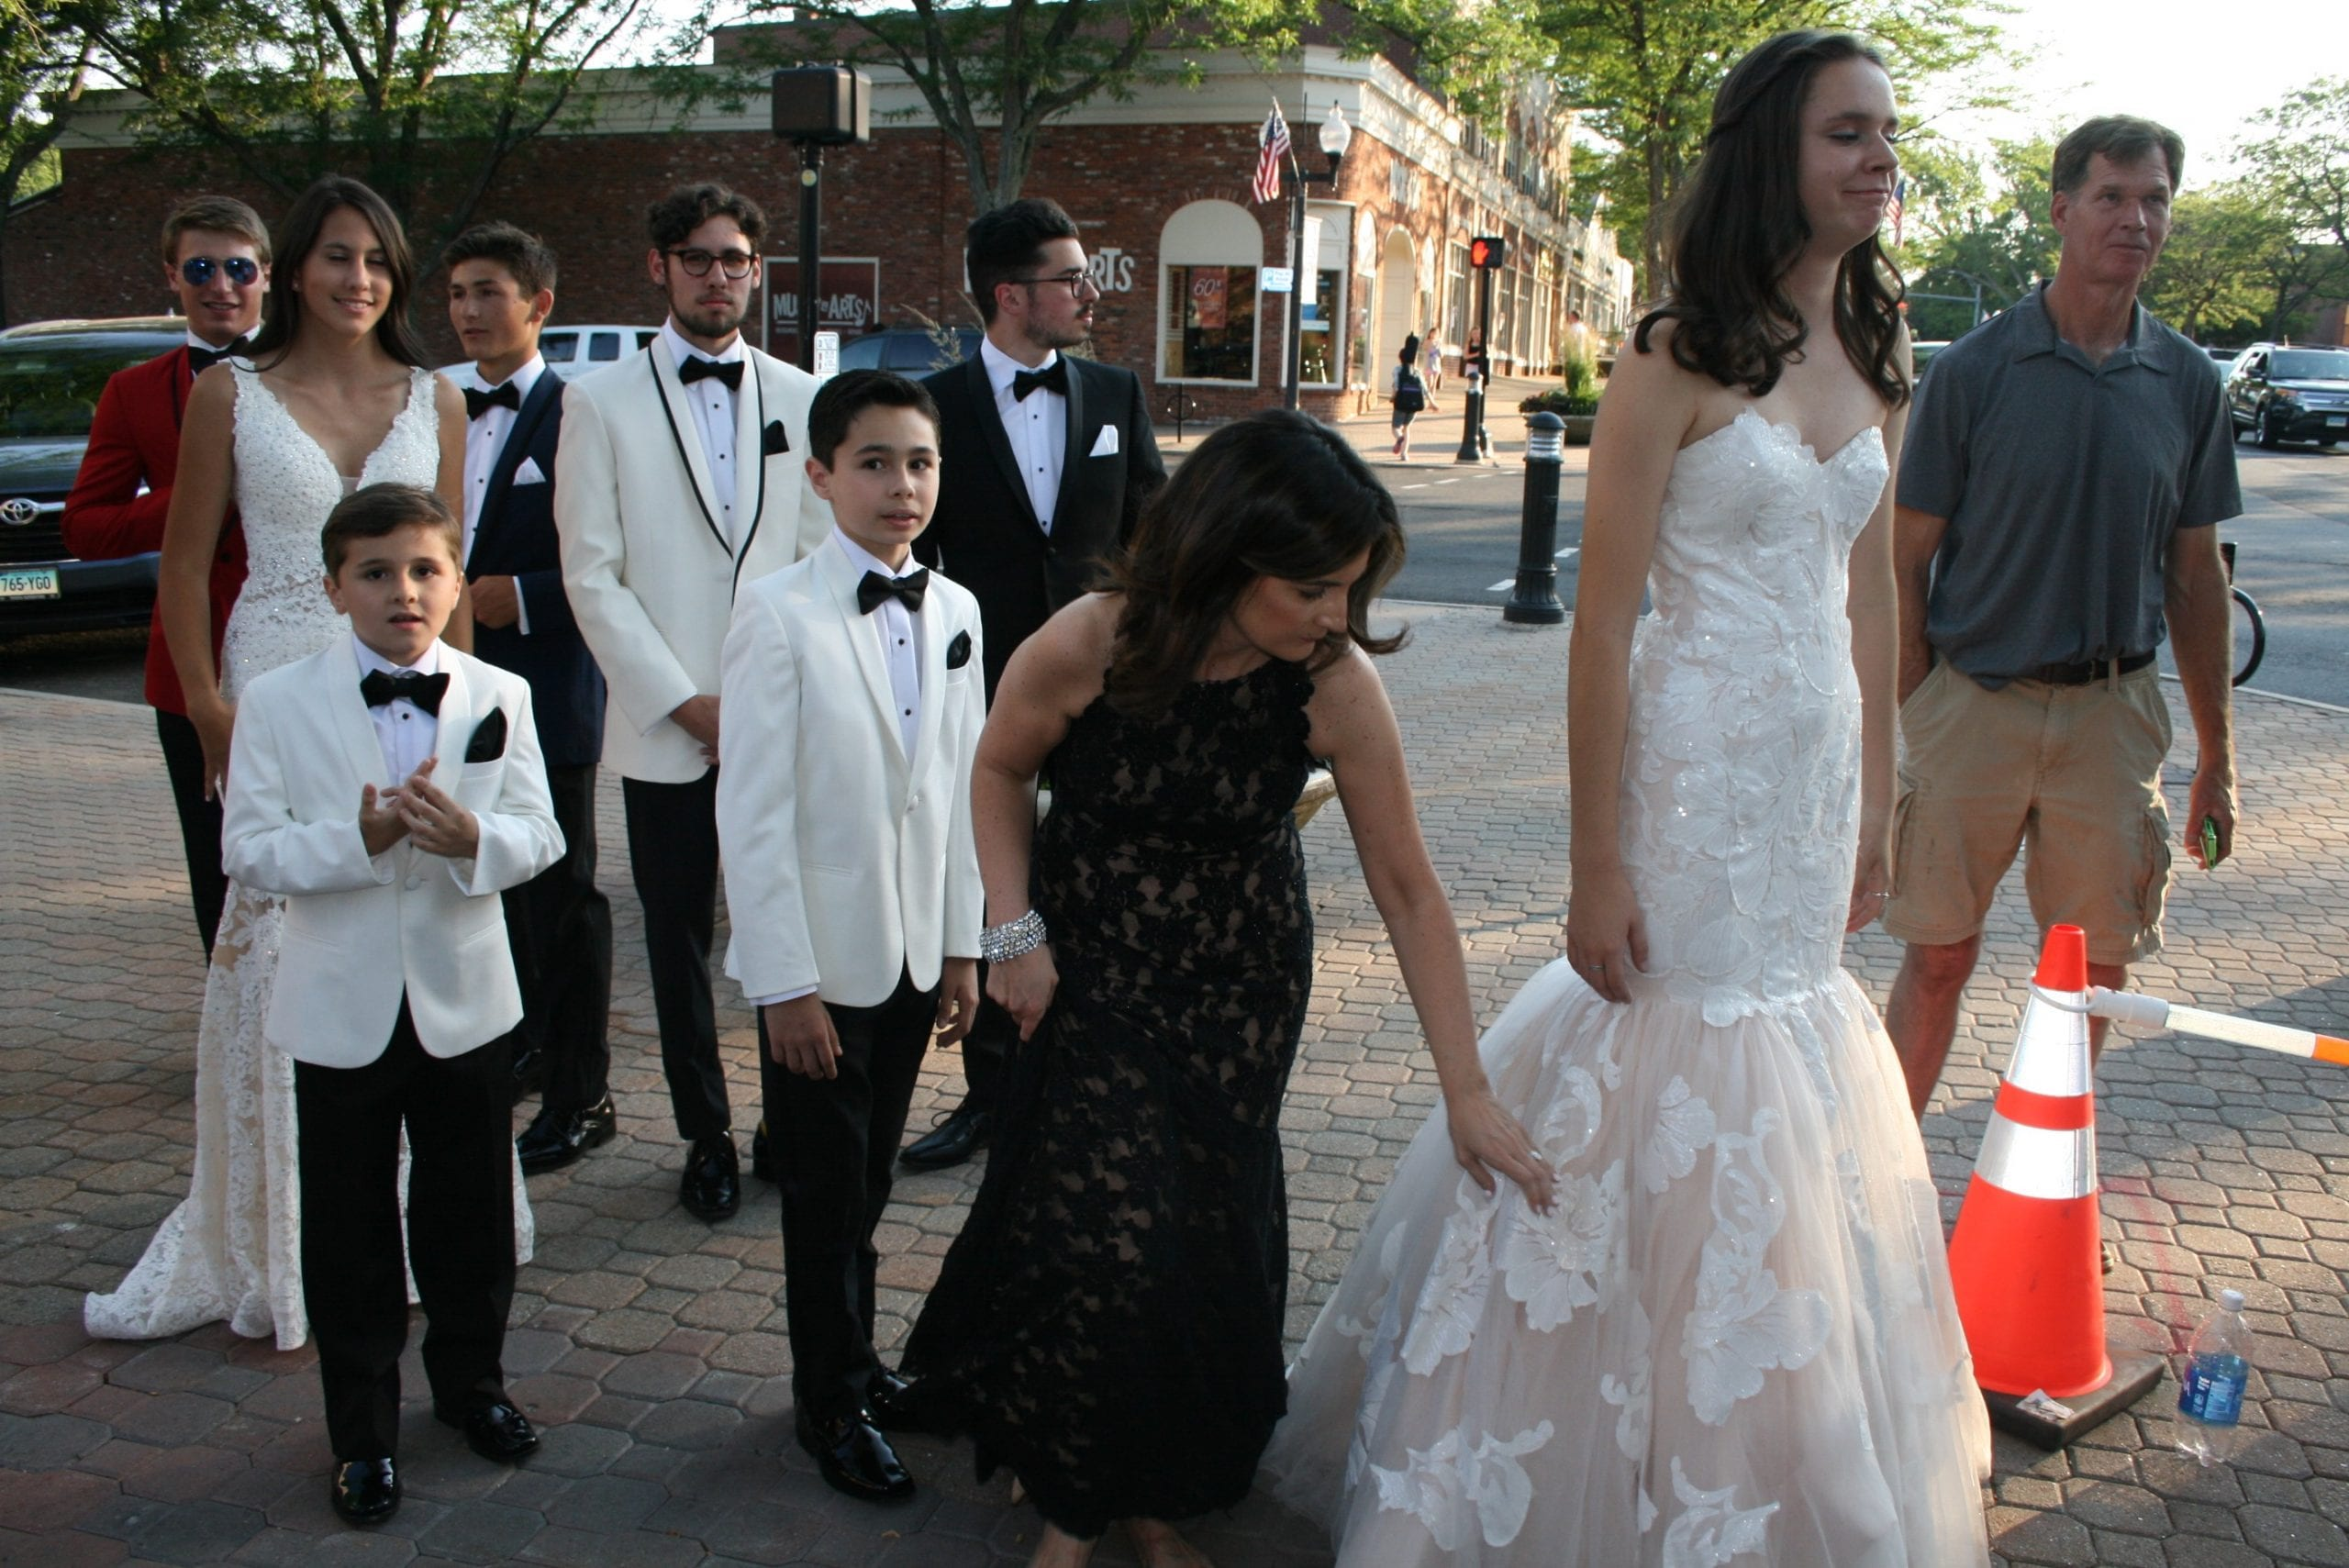 Fashion Show in West Hartford Center on the Town of West Hartford Showmobile stage on June 23, 2016. Photo credit: Joy Taylor